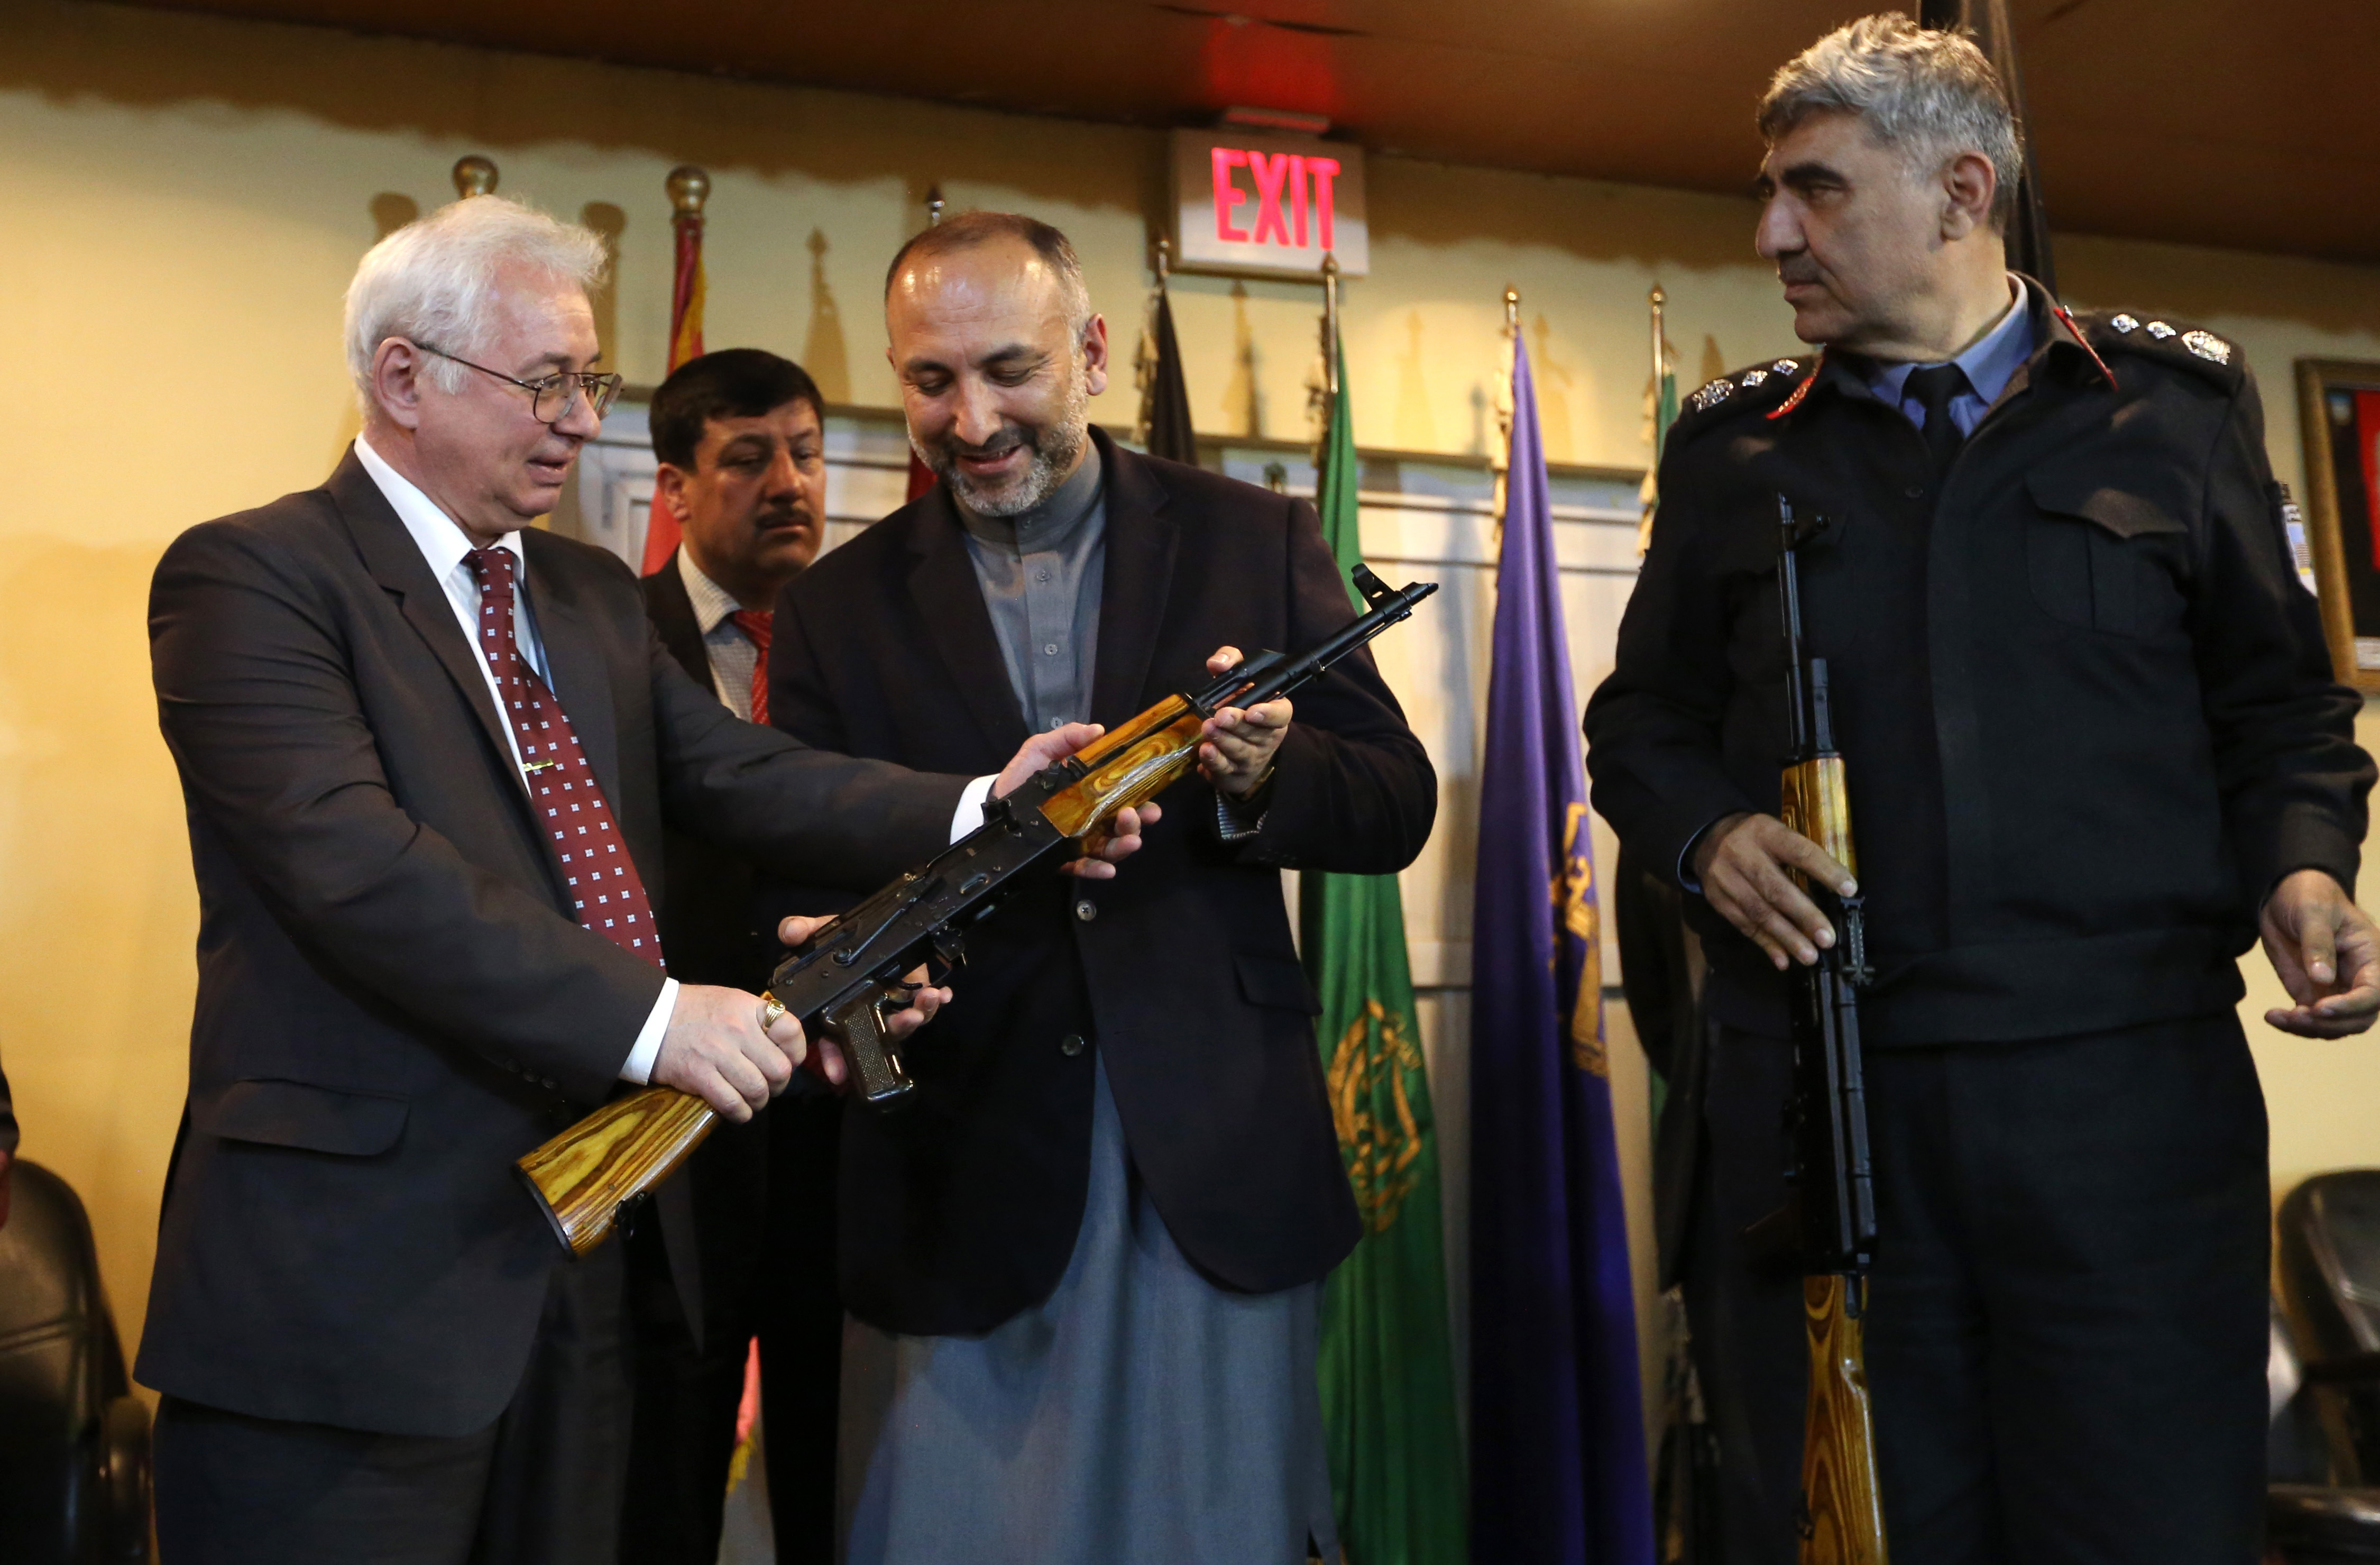 Russian Federation Ambassador, Alexander Mantytskiy, left, hands over an AK-47 to Afghan National Security Advisor, Mohammad Hanif Atmar, center, as the symbol of his country's military donation to the Afghan government, at Kabul International Airport, Wednesday, Feb. 24, 2016. The Russian embassy in Kabul announced that the Russian government handed over 10,000 AK47s as a military donation to Afghan National Security Forces. (AP Photo/Rahmat Gul)